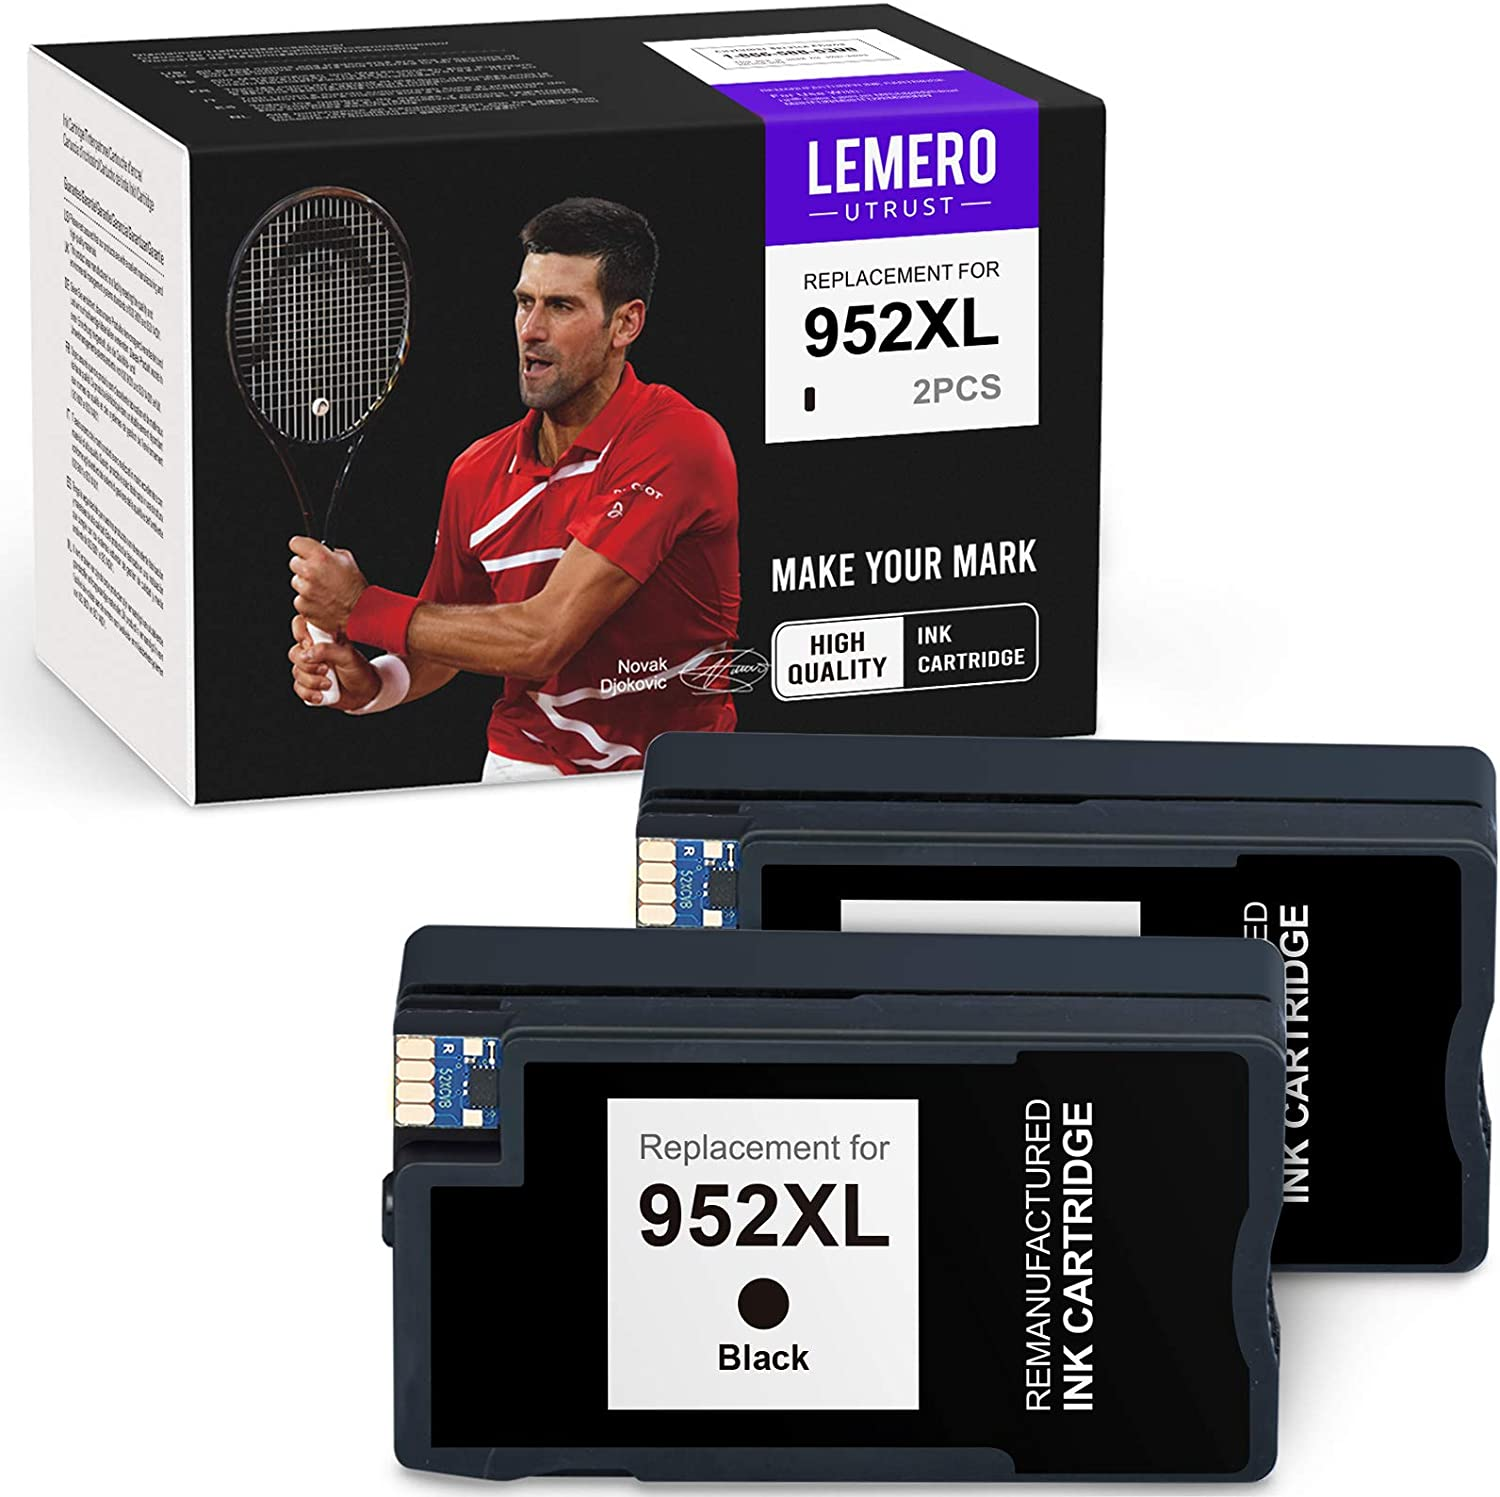 LEMEROUTRUST Remanufactured Ink Cartridge Replacement for HP 952 XL 952XL use with HP OfficeJet 8702 OfficeJet pro 8710 8715 8720 8725 8740 8730 8210 8216 8200 7720 8735 8716 8728 (Black, 2-Pack)